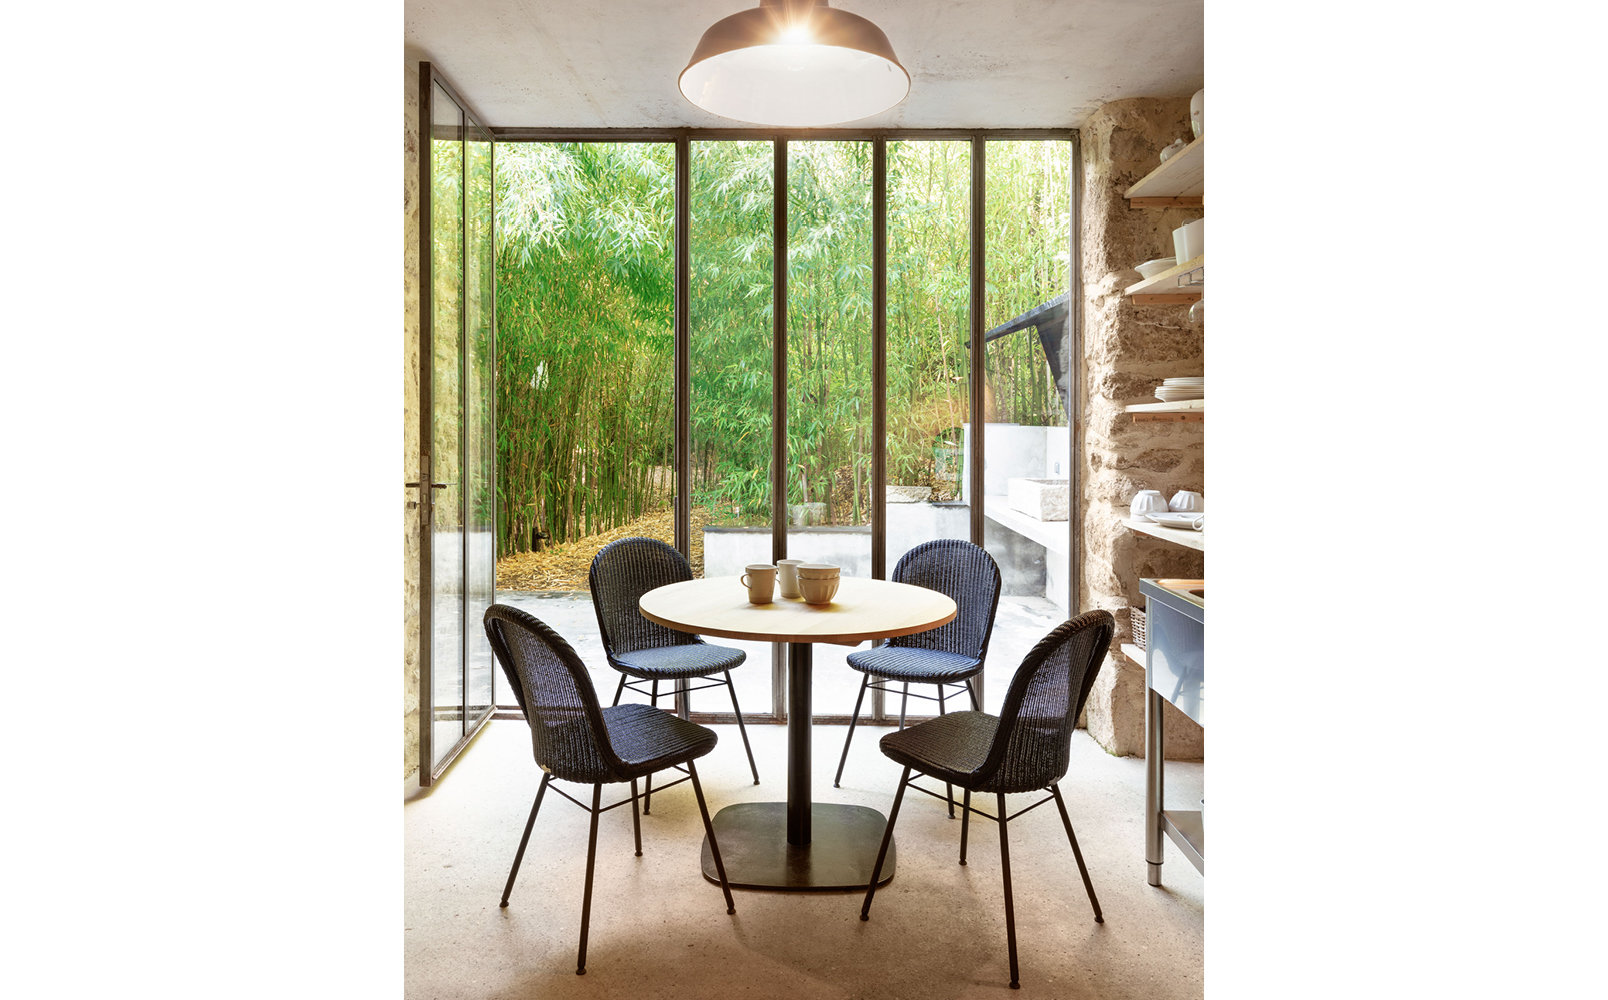 vincent-sheppard-yann-dining-chair-steel-a-base-bistro-dining-table-rounded